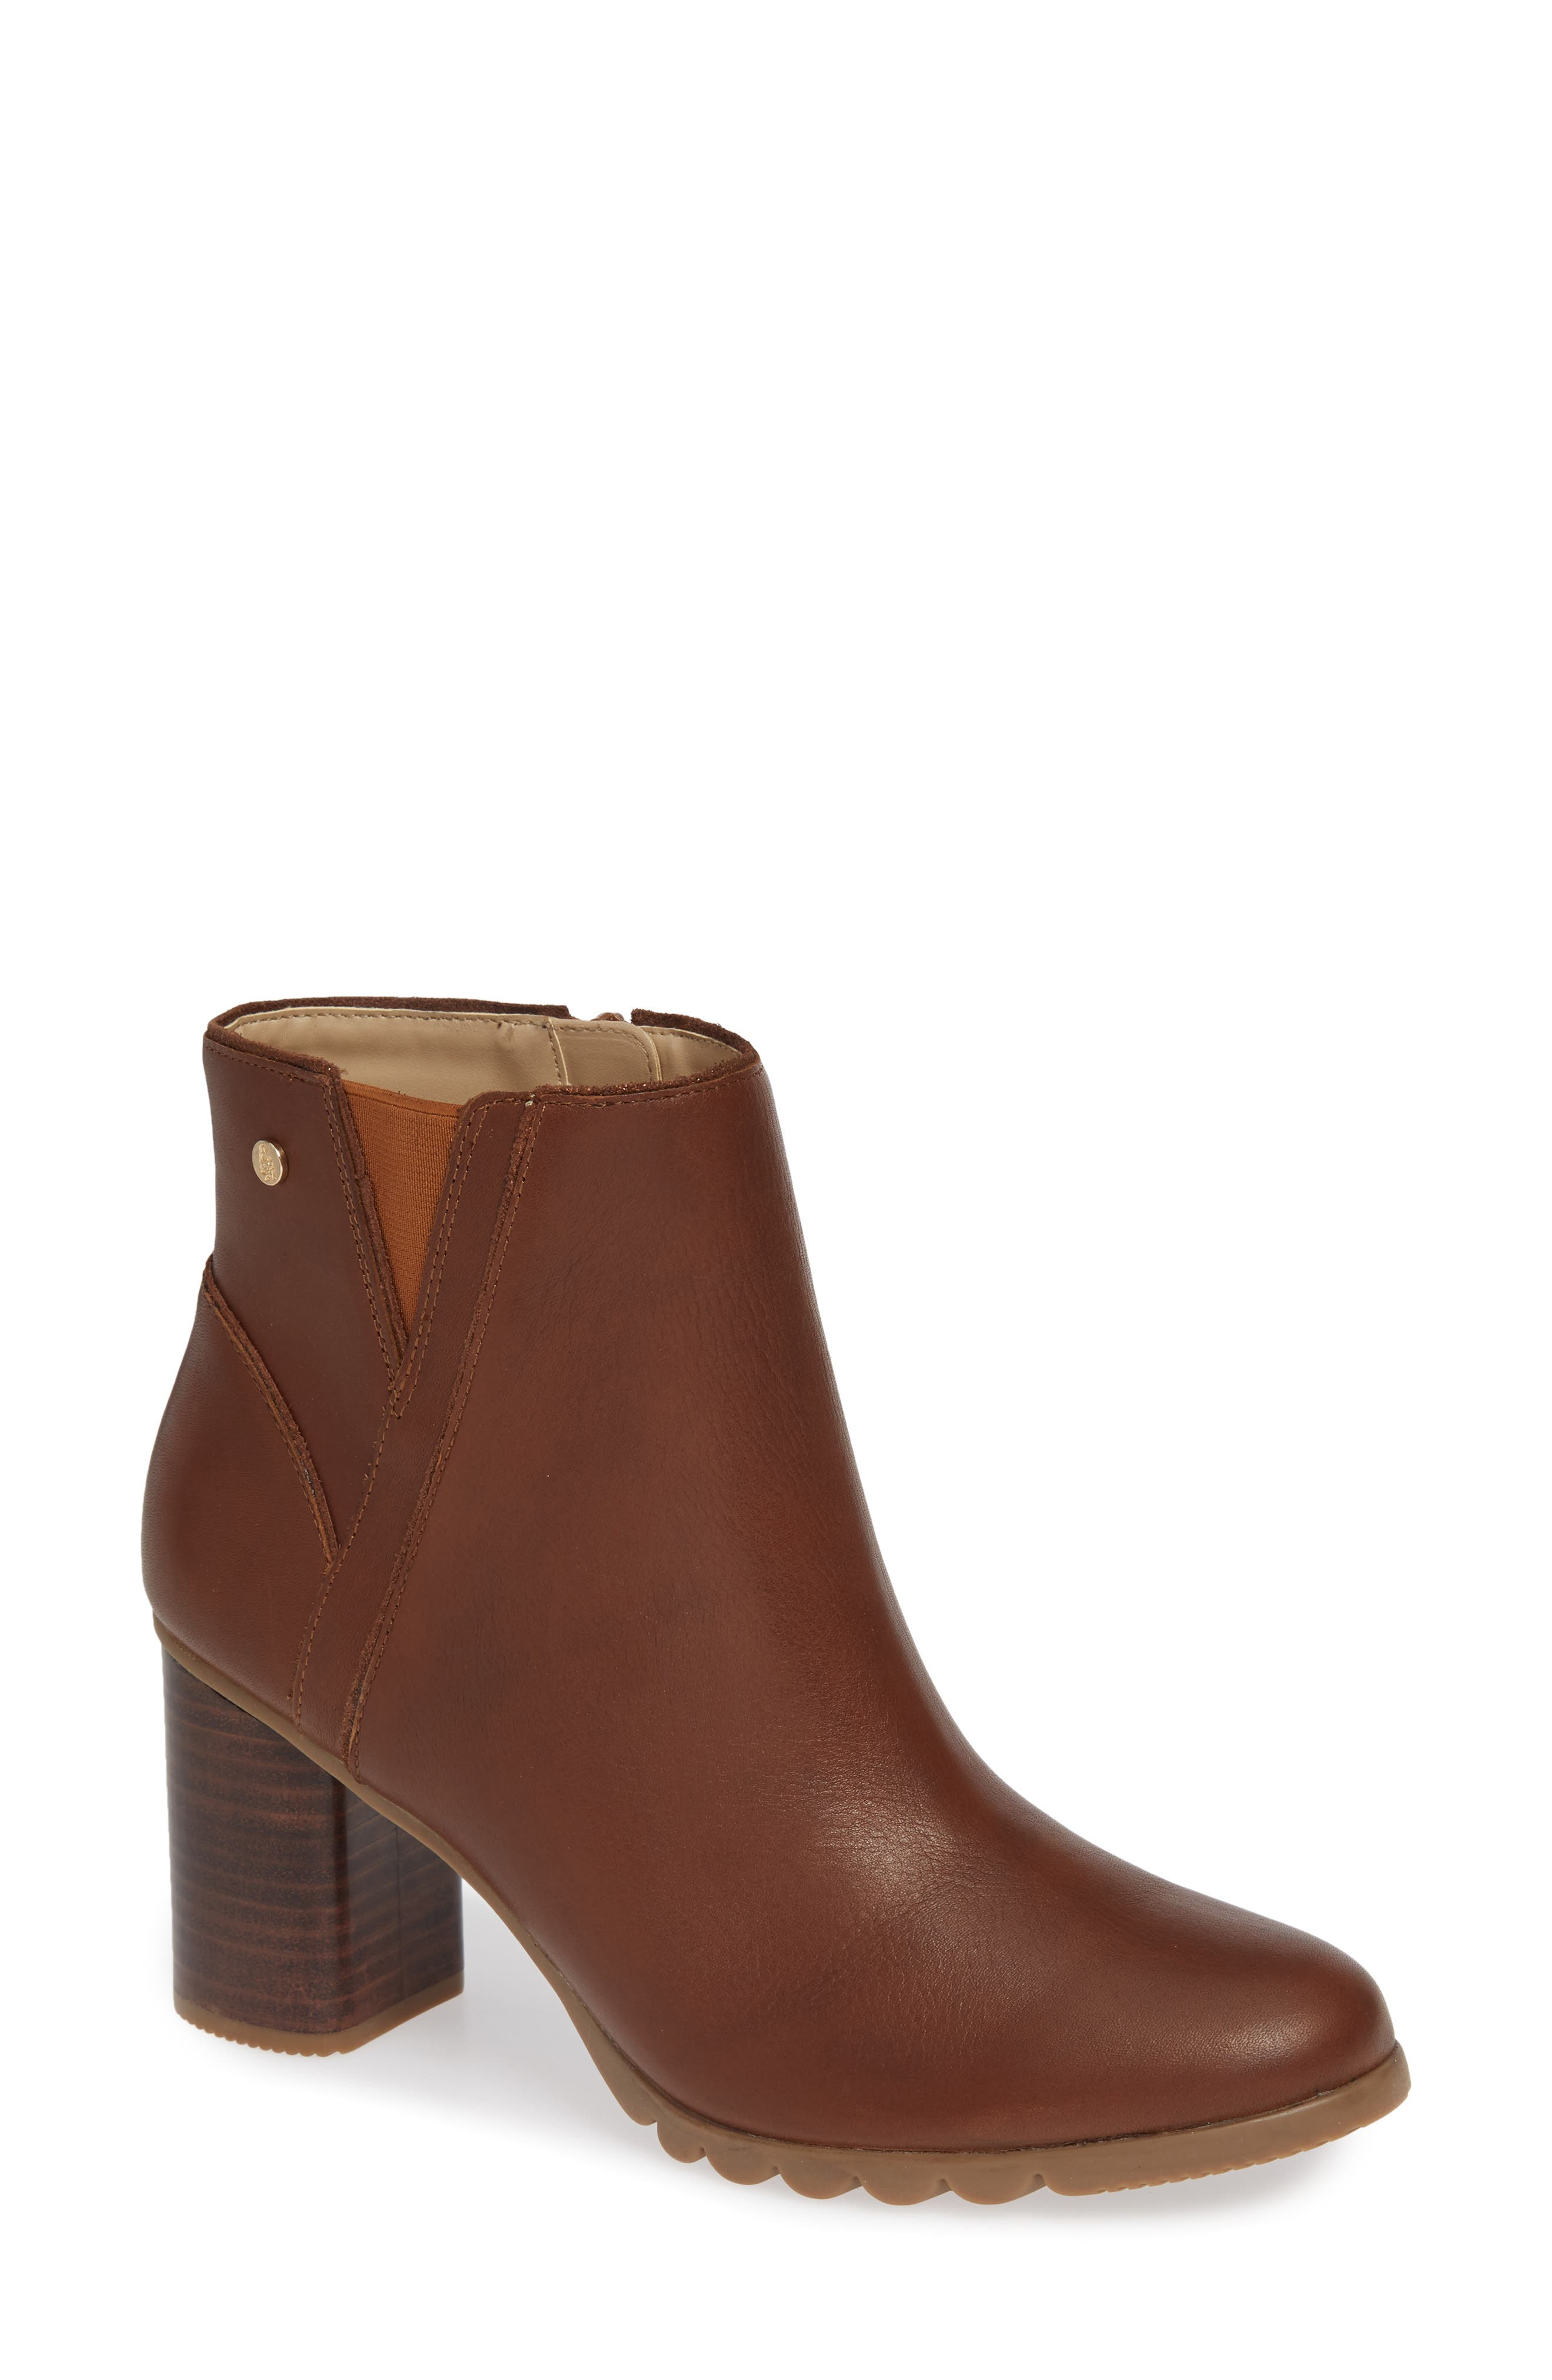 Hush Puppies Spaniel Ankle Bootie, Brown